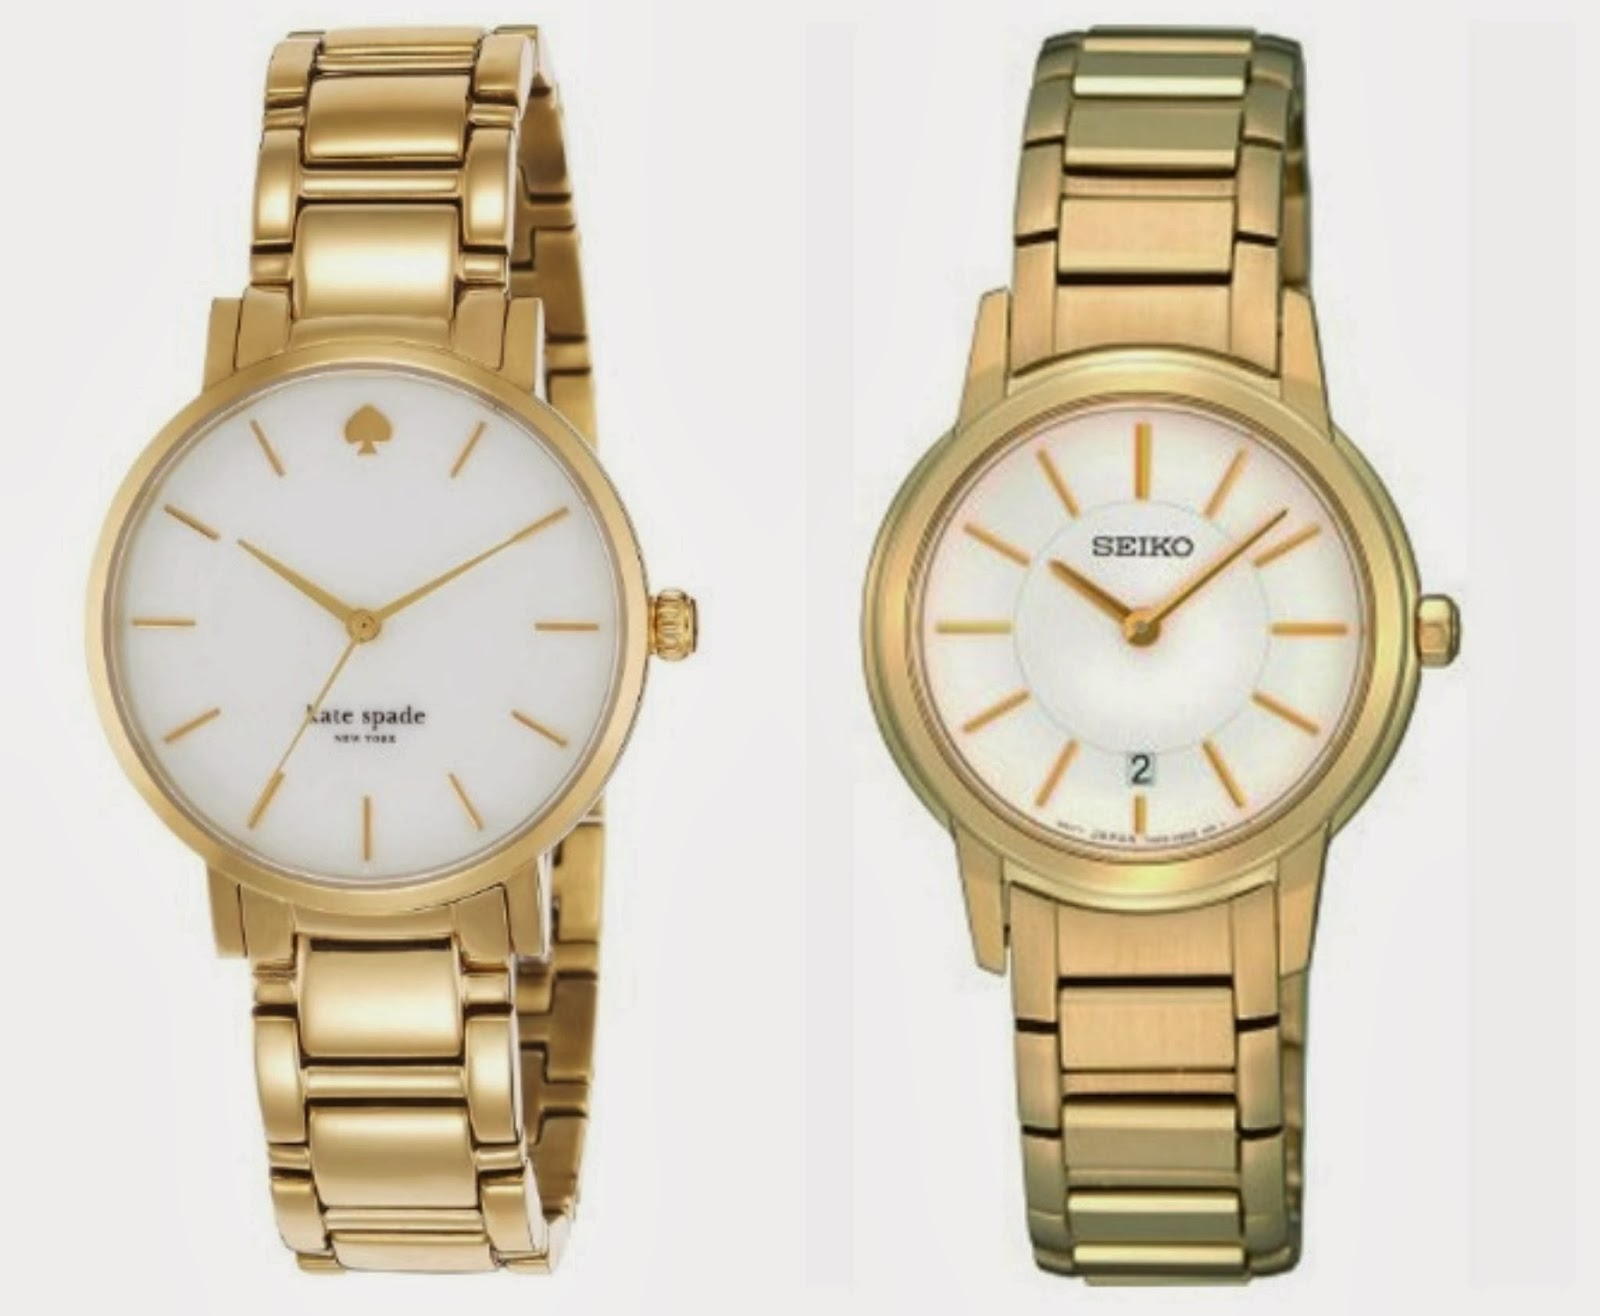 Kate Spade and Seiko Ladies Watches from The Watch Hut